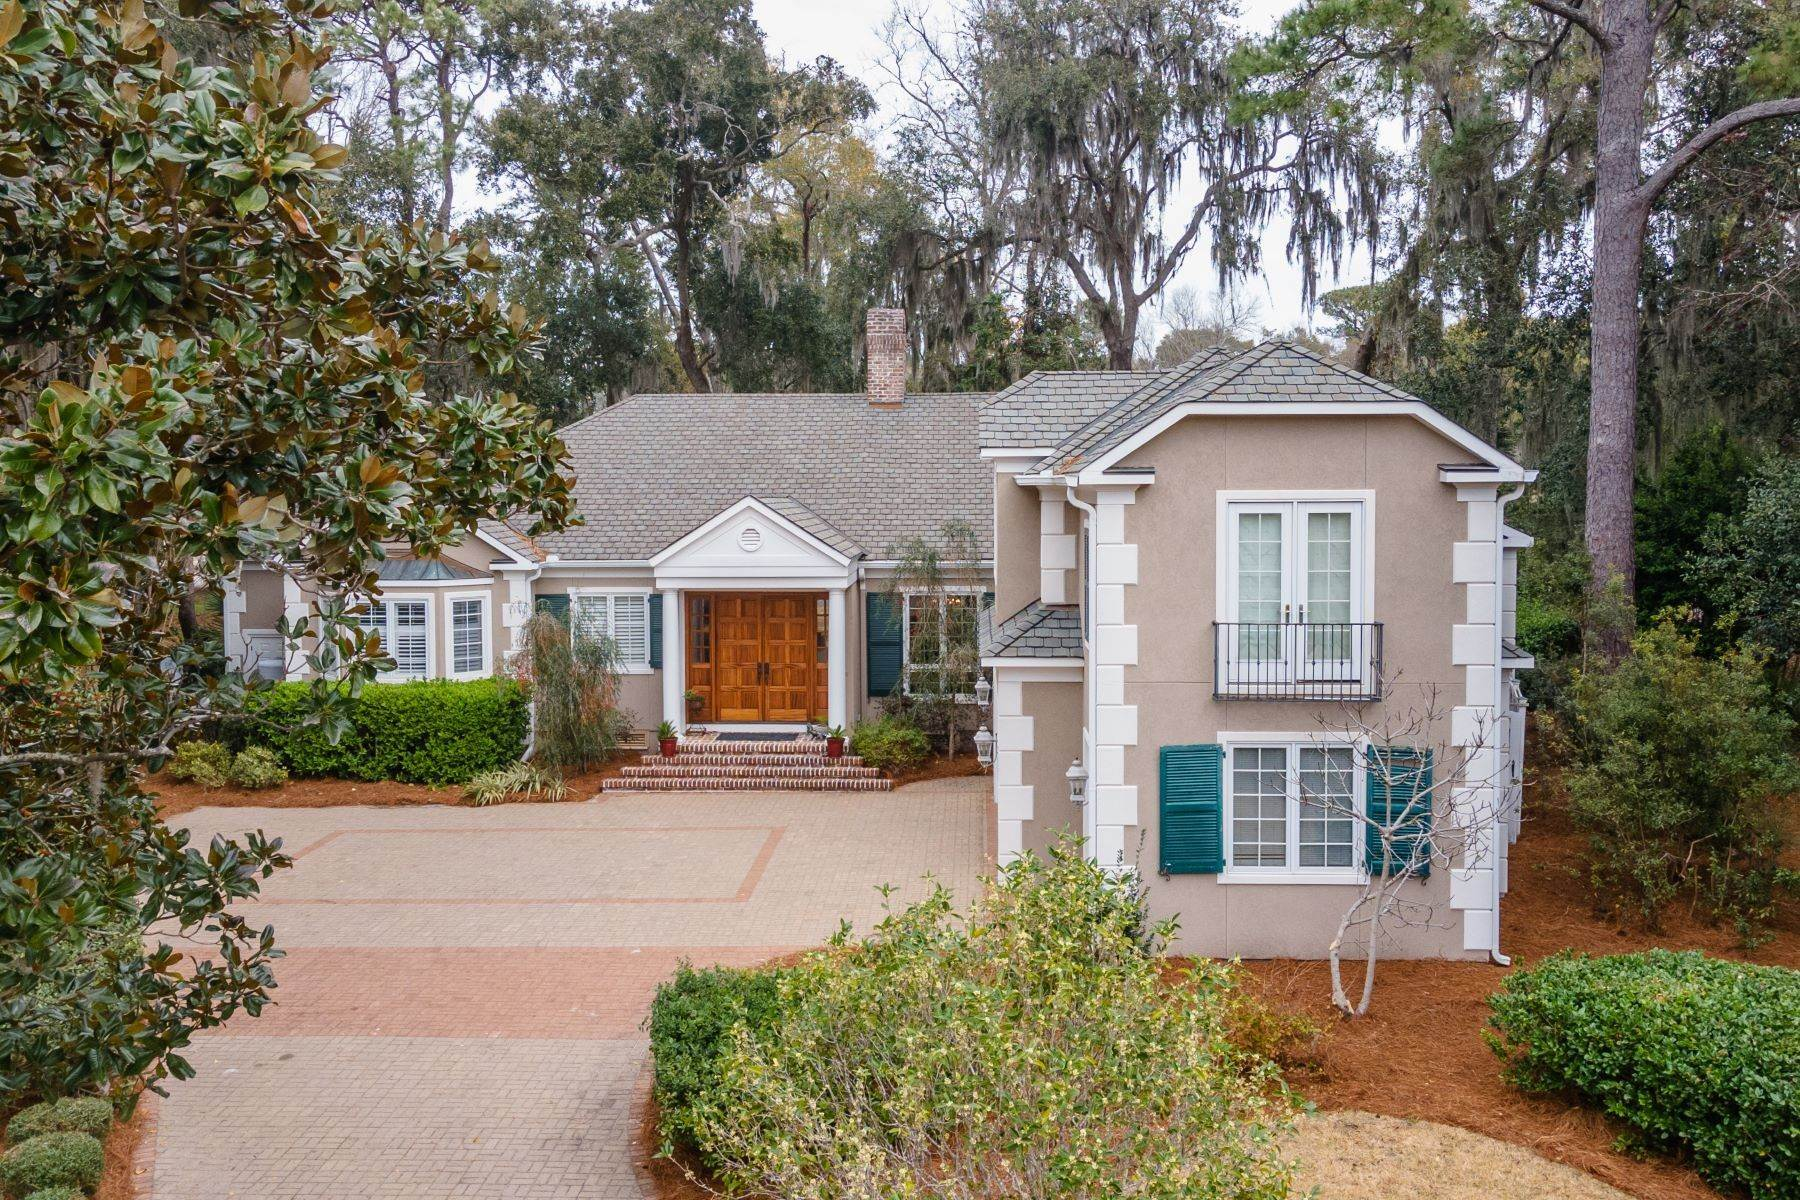 Property for Sale at Golf Community and Resort Living 7 Middleton Gardens Place Bluffton, South Carolina 29910 United States